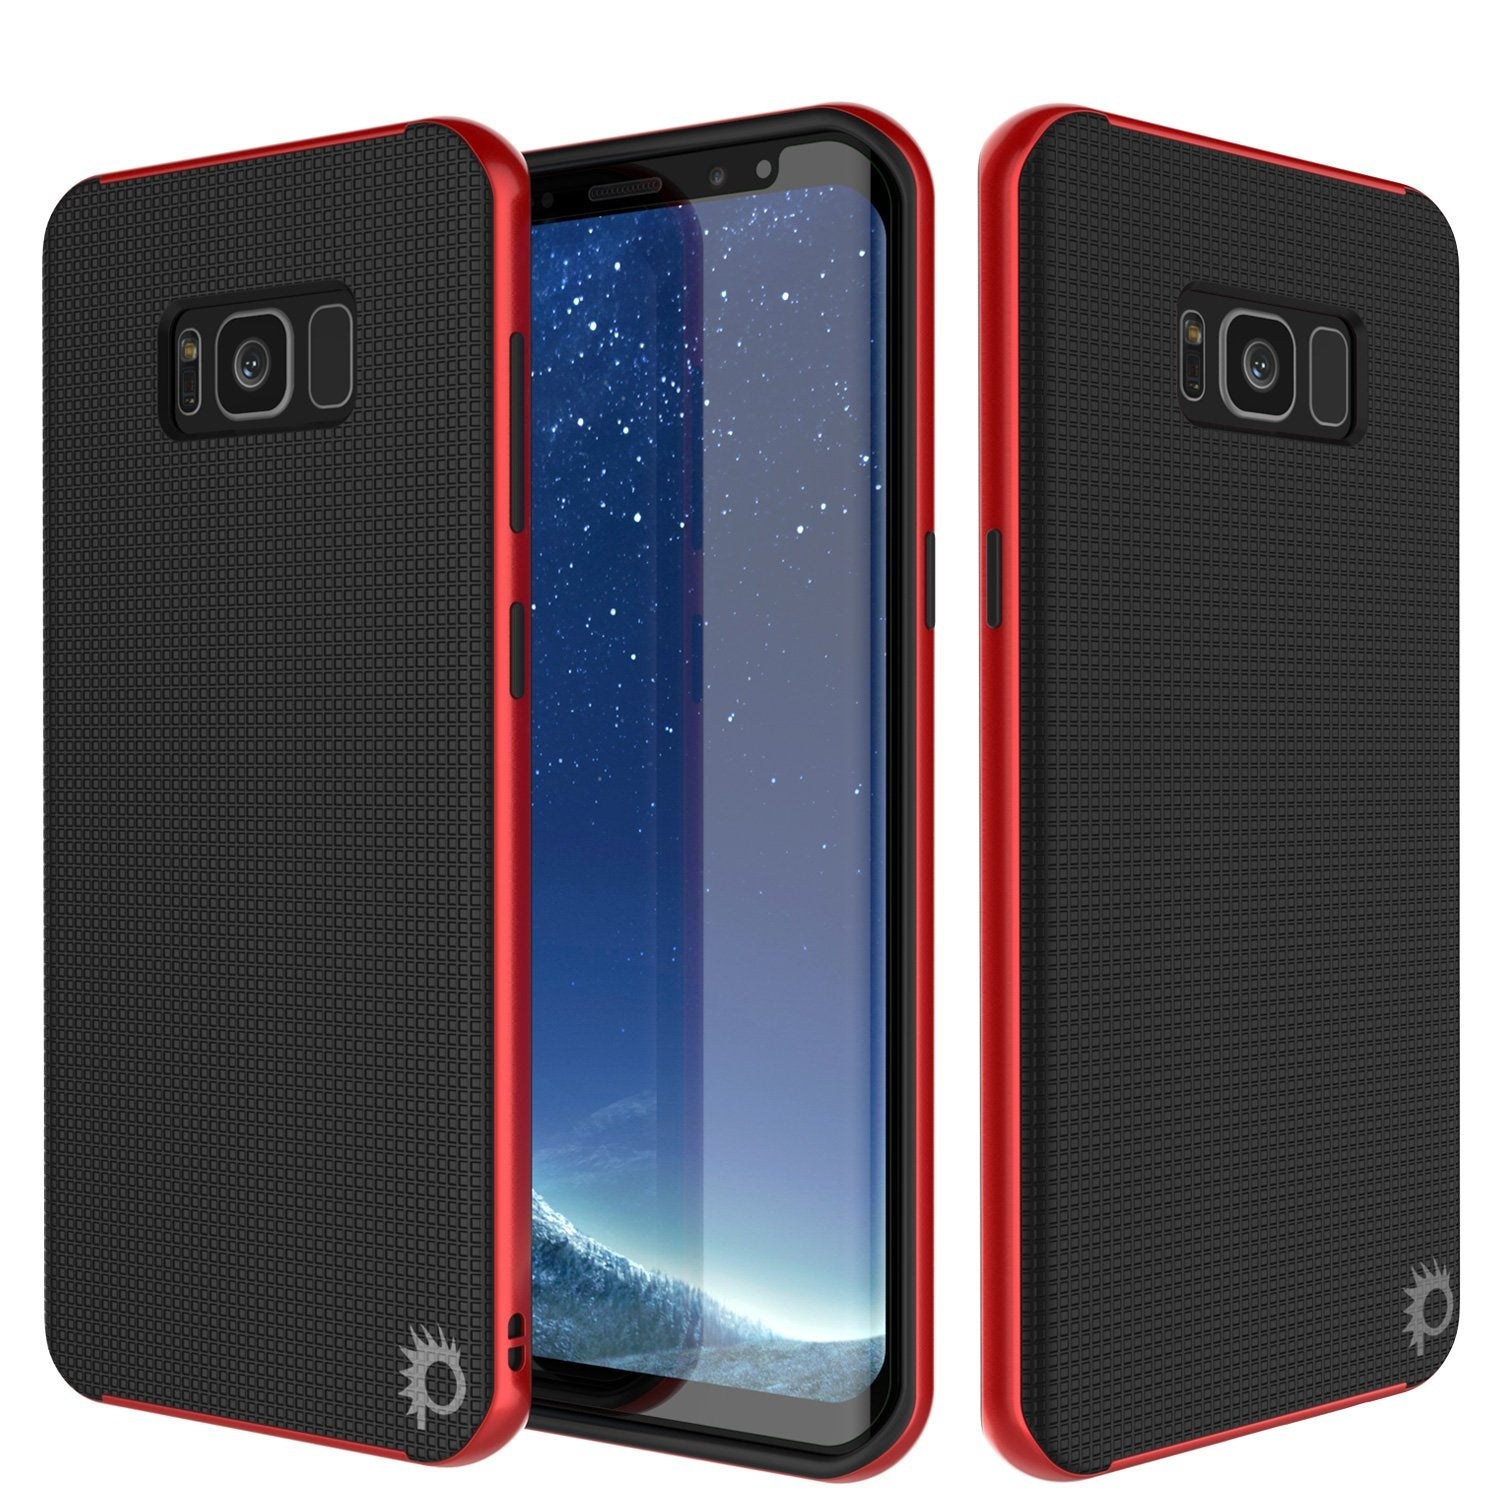 Galaxy S8 PLUS Case, PunkCase [Stealth Series] Hybrid 3-Piece Shockproof Dual Layer Cover [Non-Slip] [Soft TPU + PC Bumper] with PUNKSHIELD Screen Protector for Samsung S8+ [Red]